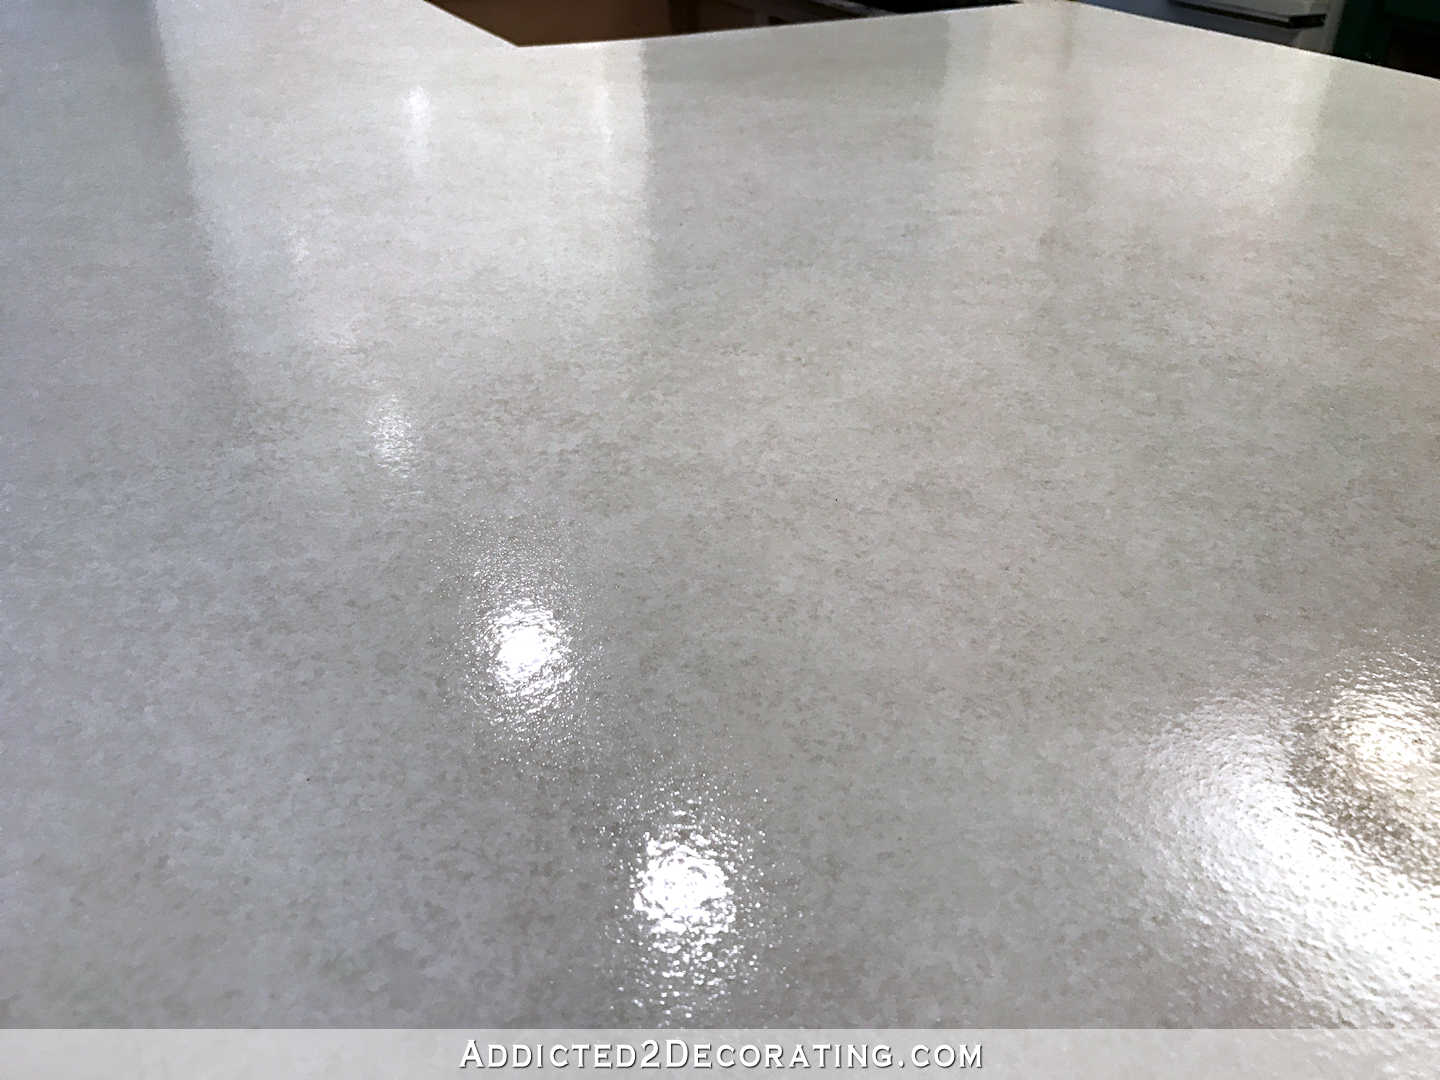 refinishing concrete countertops - 41 - finished counteretop with the clear coat polyurea sealer - peninsula close up